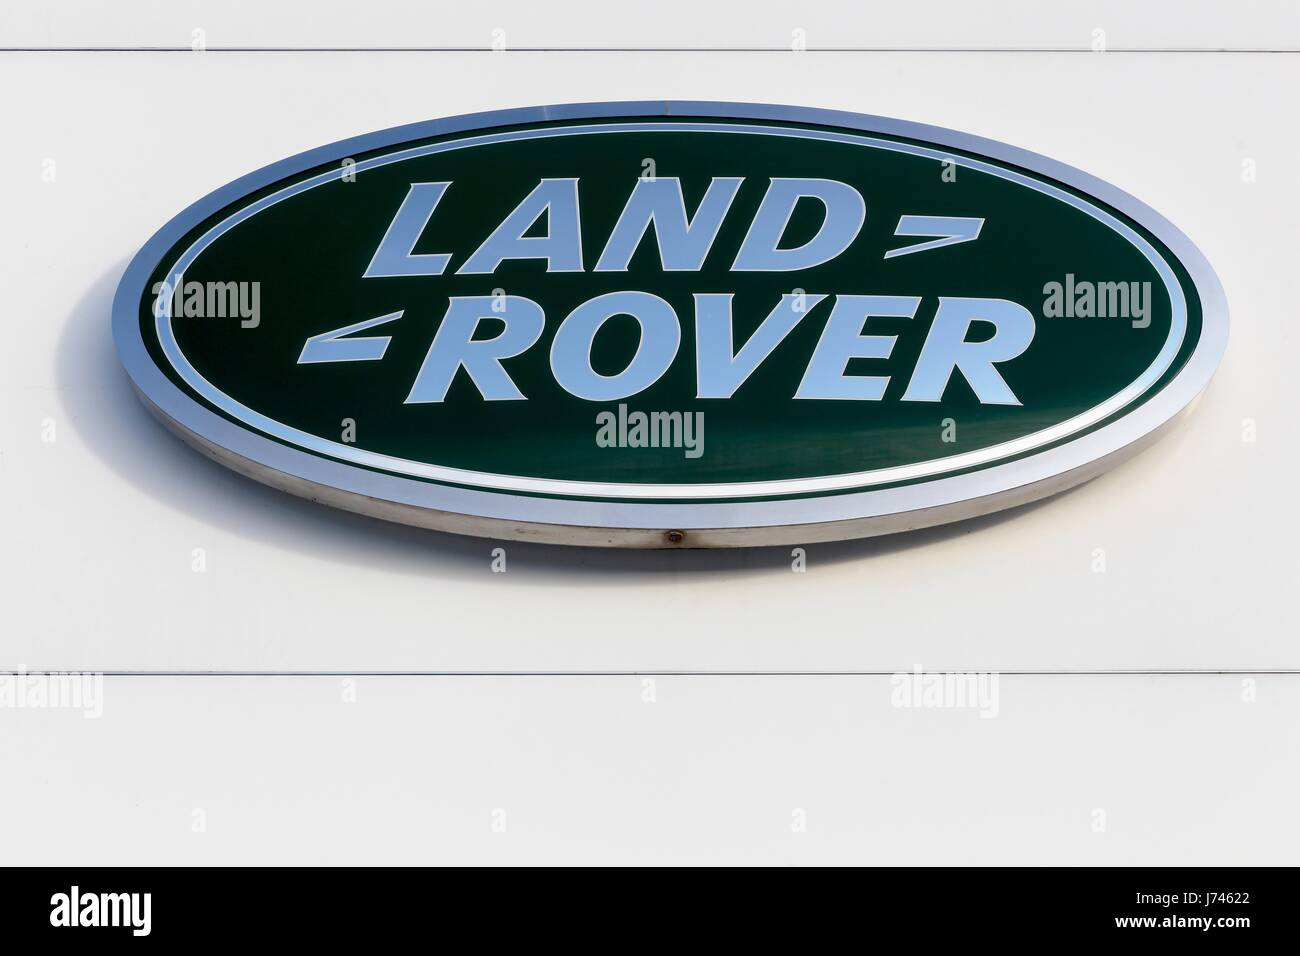 Aarhus, Denmark - January 17, 2016:Land Rover logo on a wall. Land Rover is a car brand that specialises in four - Stock Image